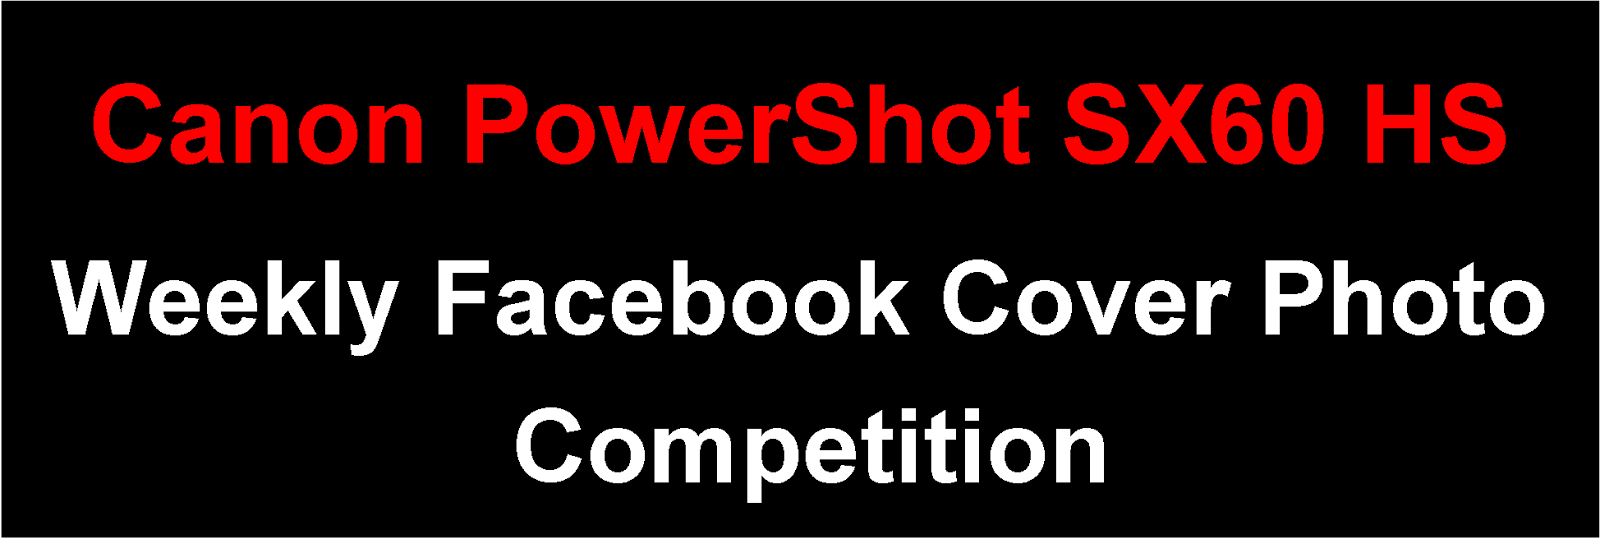 Canon PowerShot SX60 HS Facebook Cover Photo Competition - Week Three Entries